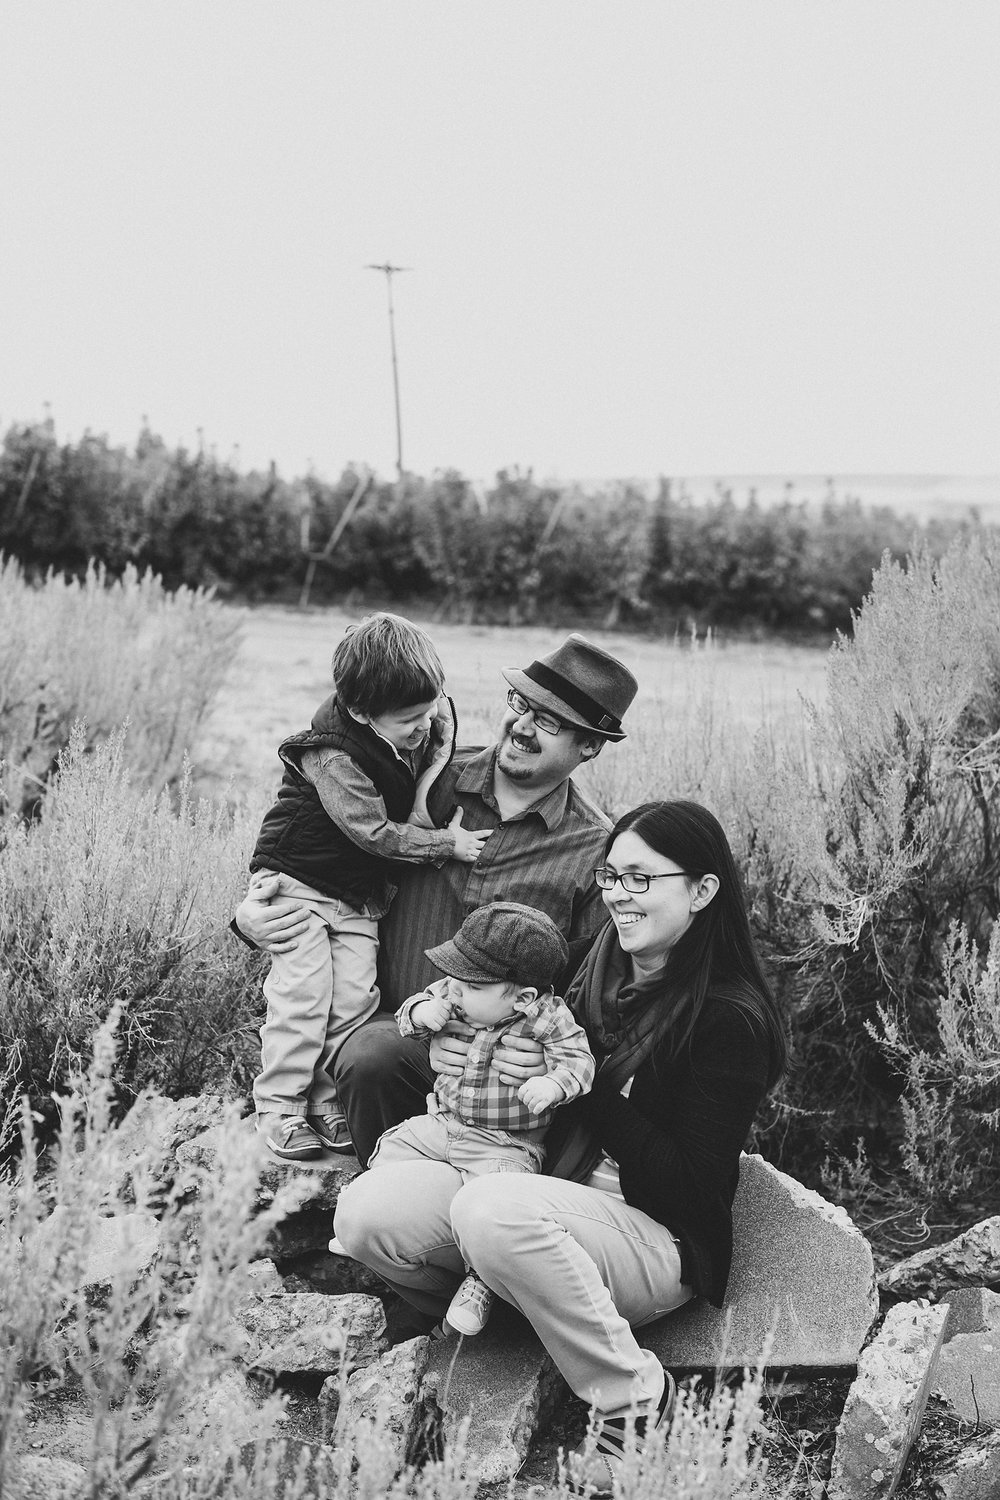 Jordan Edens Photography_tri cities photographer_tri cities portrait photographer_richland photographer_kennewick photographer_portrait photographer_tri cities family photographer_family photos_child photos_newborn photos_2018 favorites_42